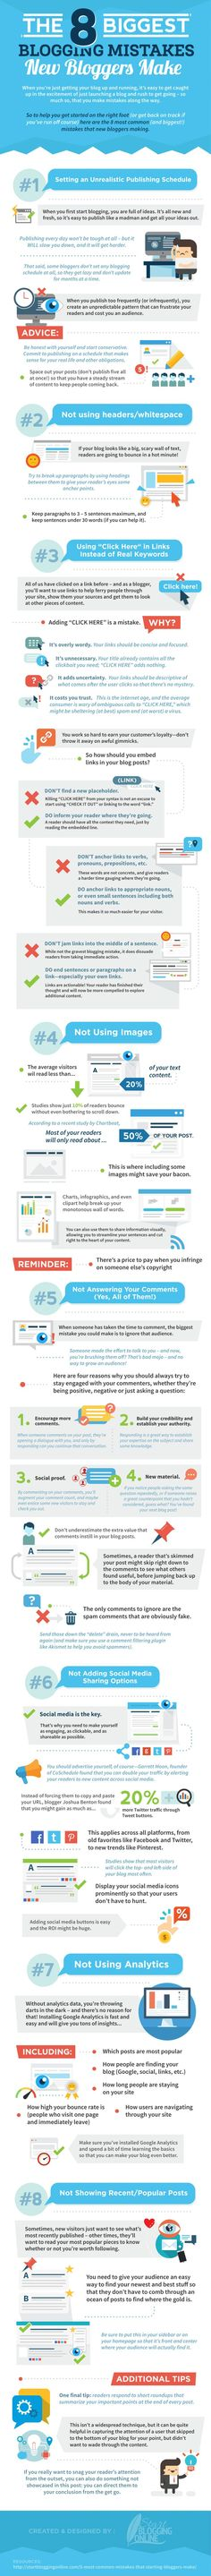 8 Blogging Mistakes New Bloggers Make